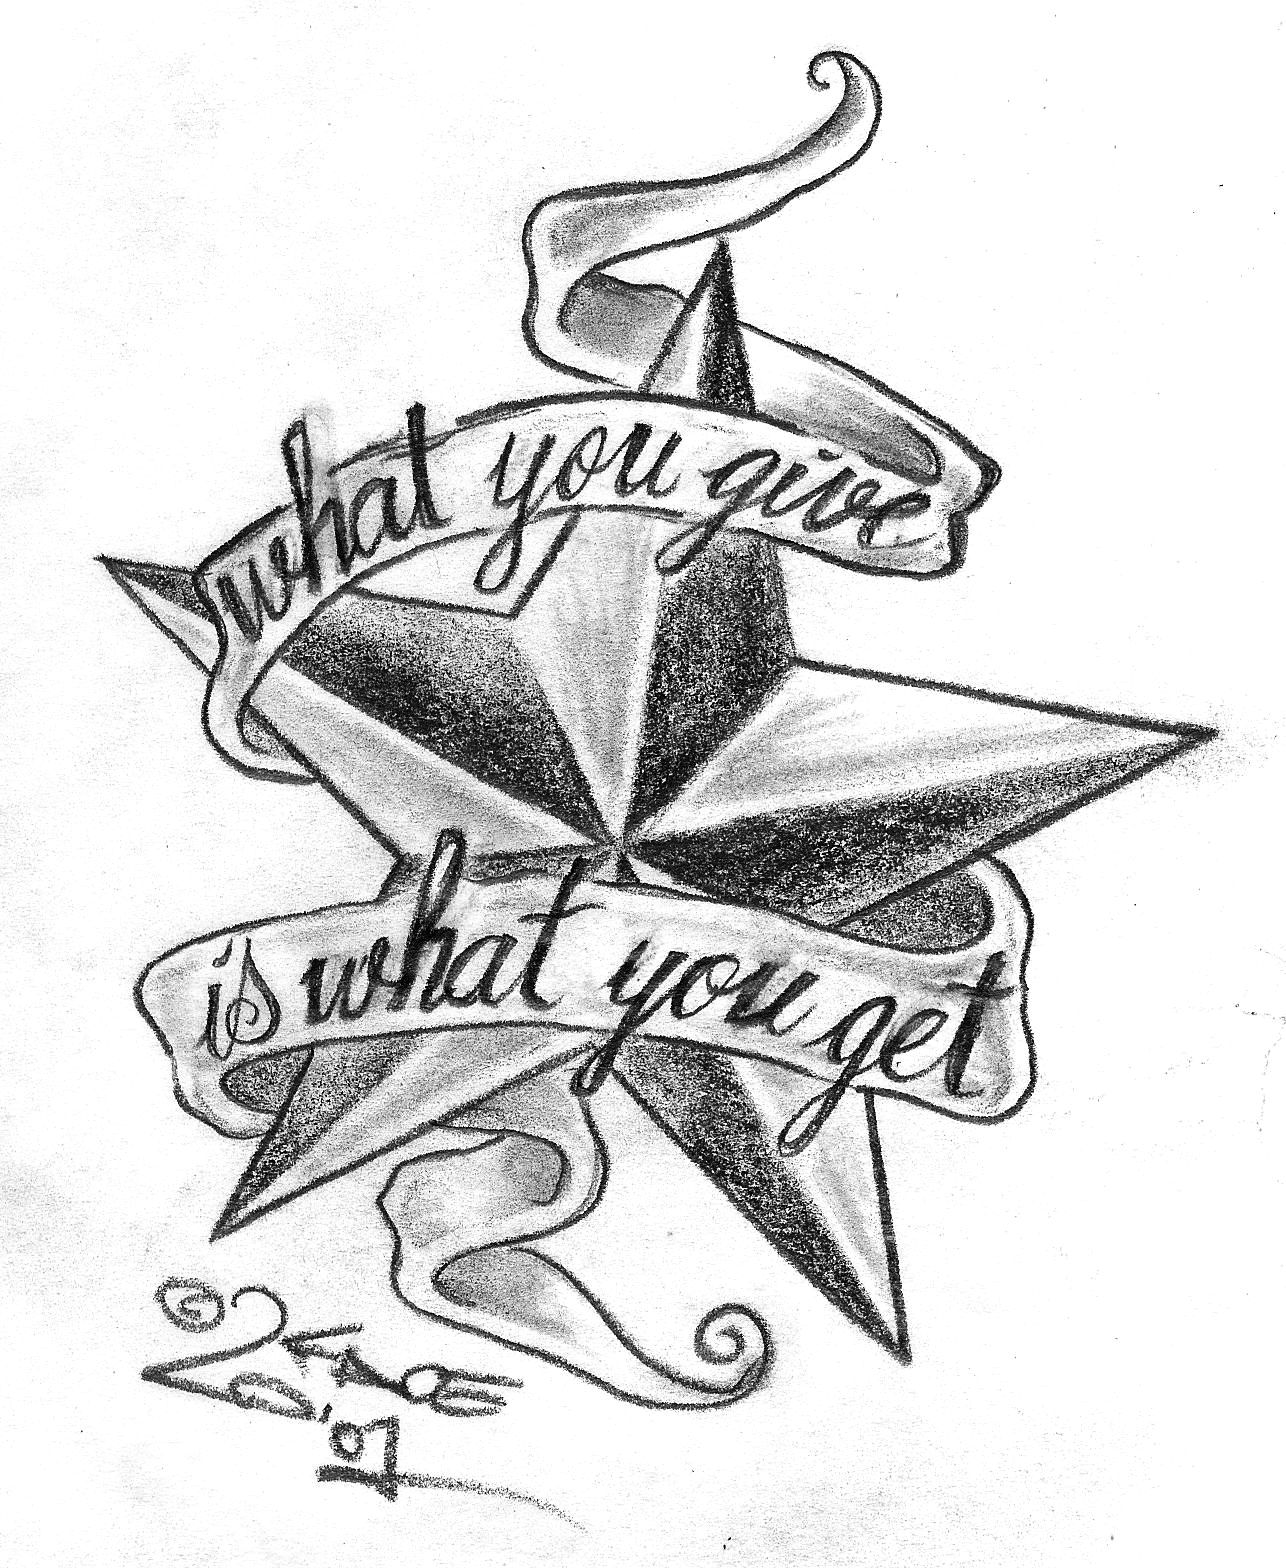 tattoo designs  cool tattoos designs